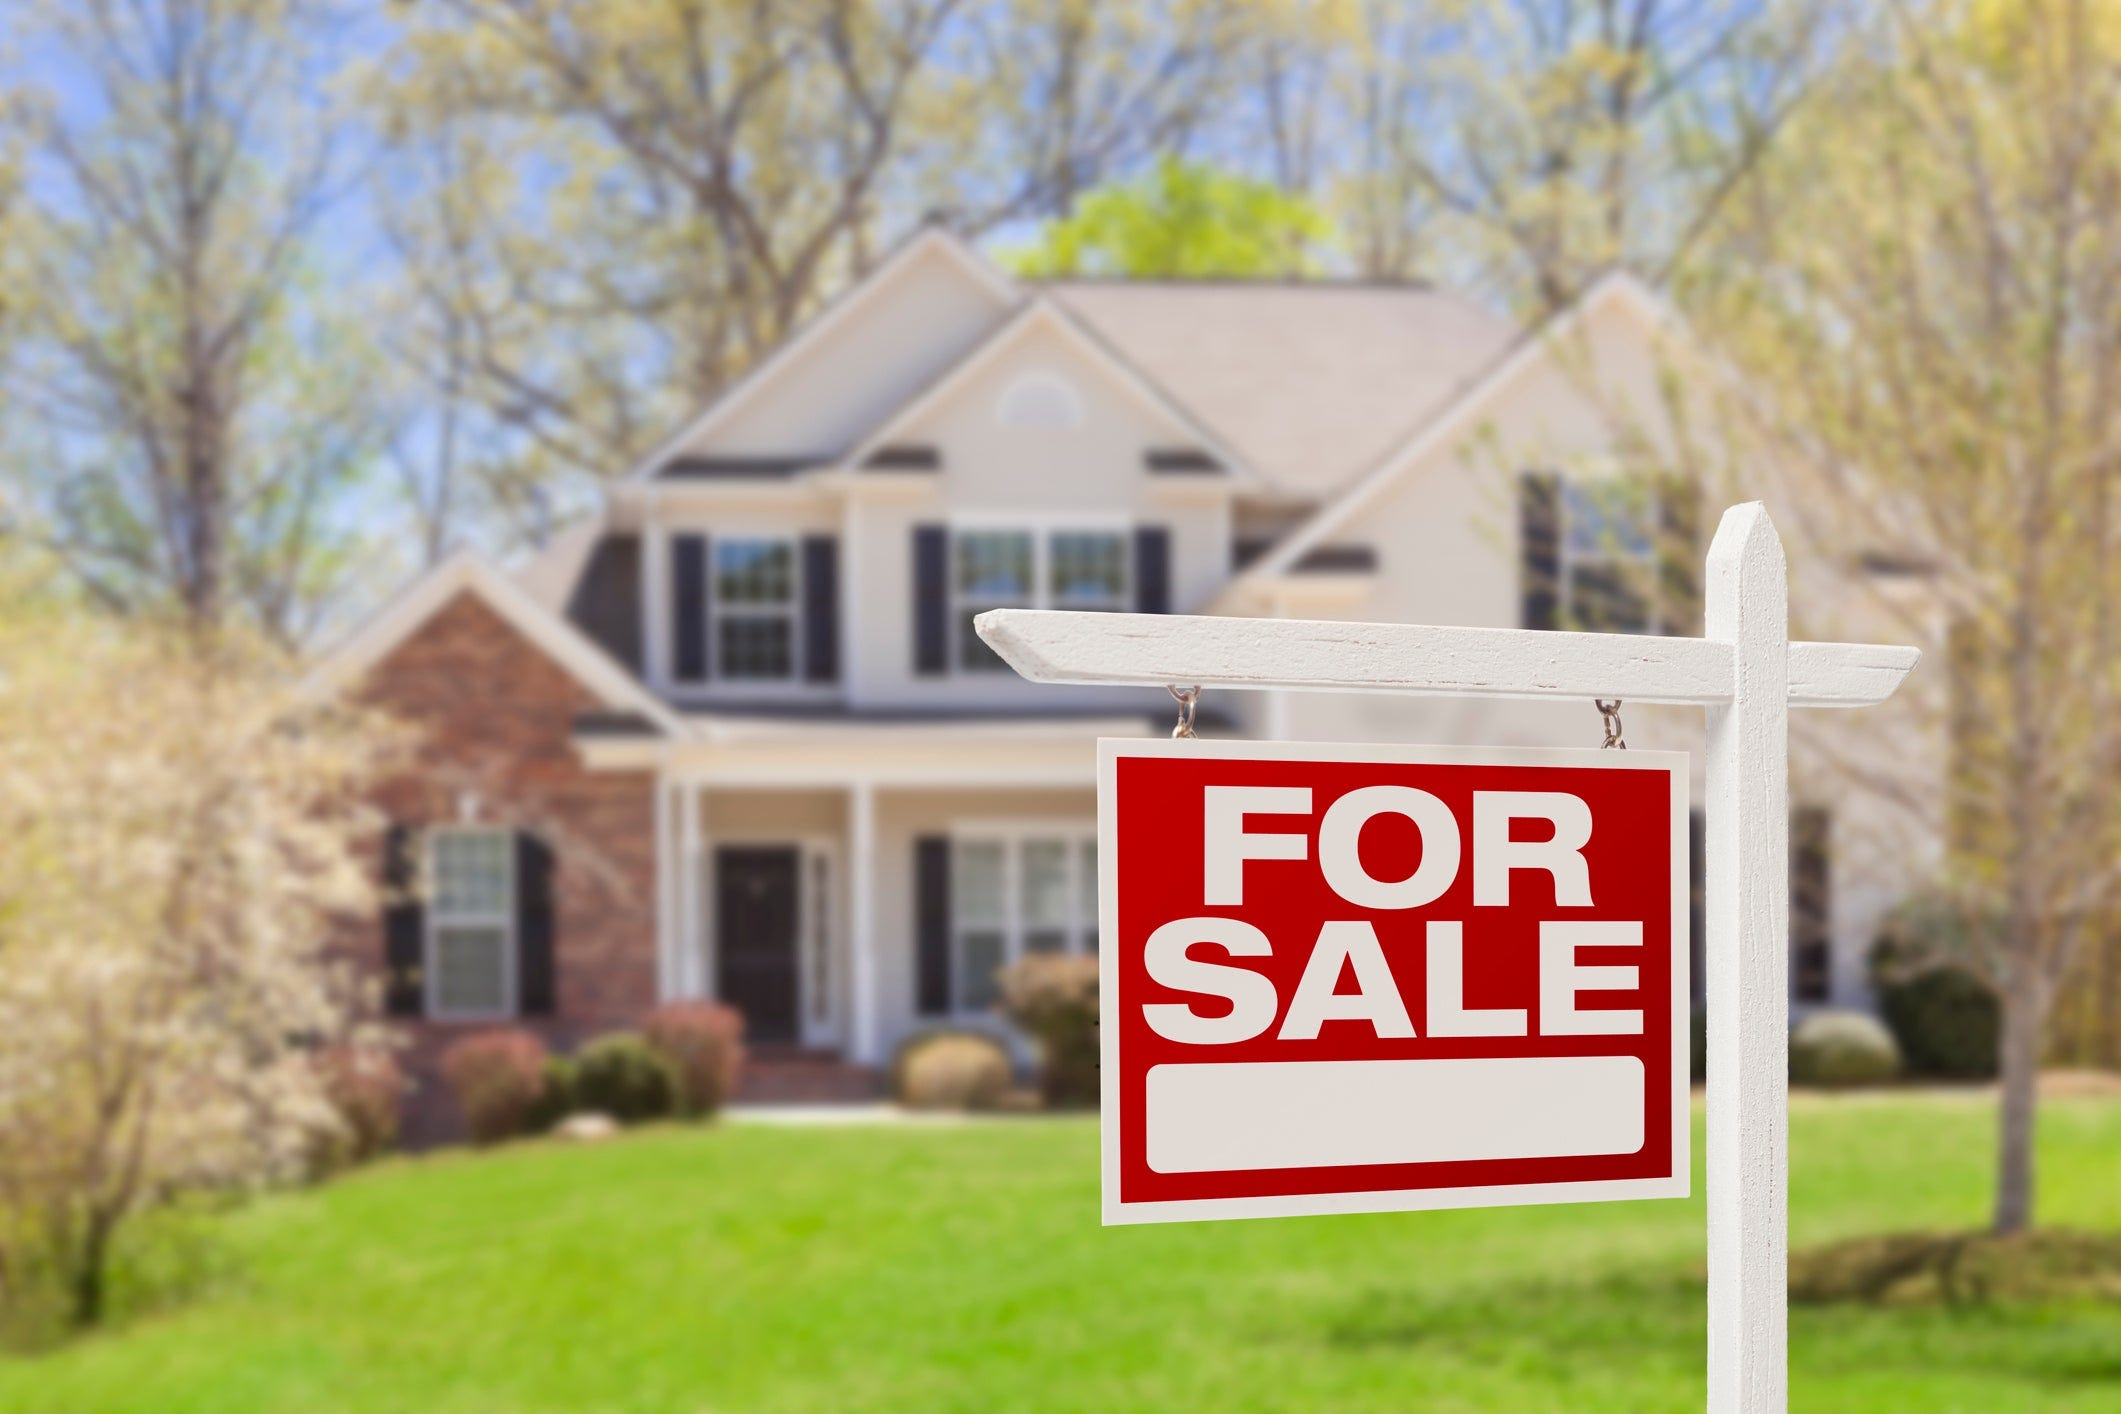 Black homeownership lags whites fueling wealth gap, report finds